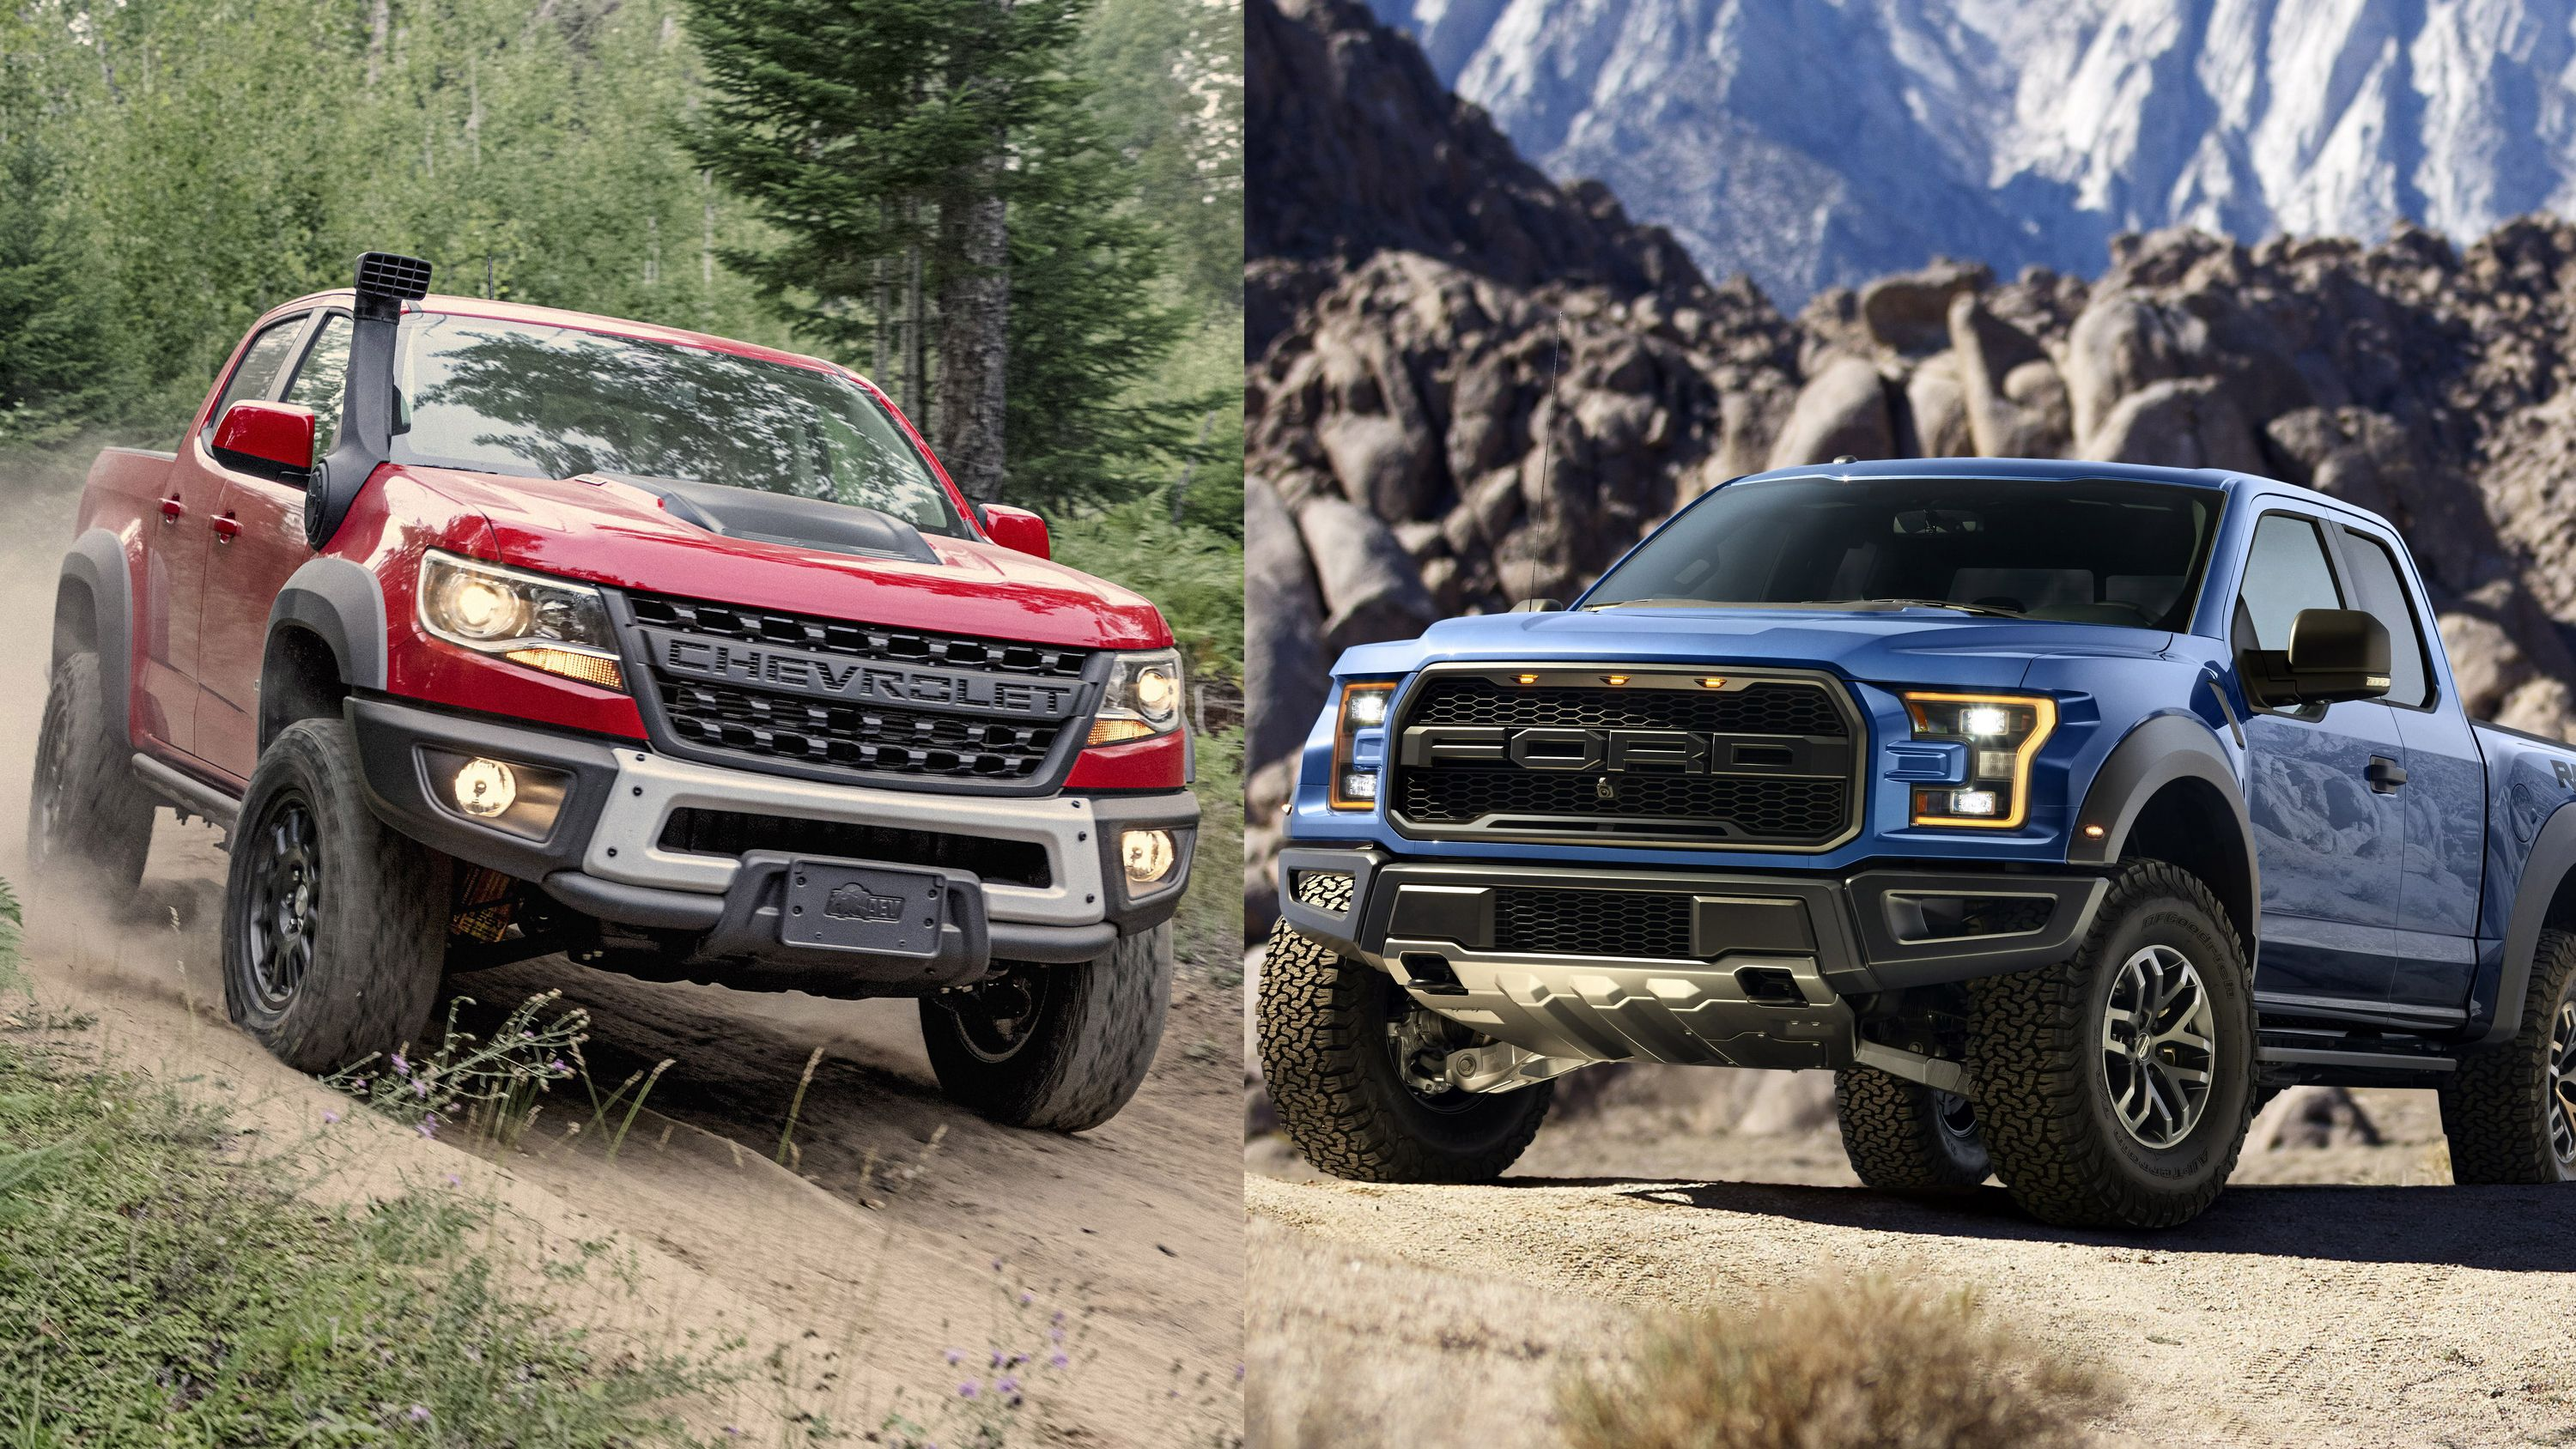 Chevy Colorado Zr2 Bison Vs Ford F 150 Raptor Top Speed Chevy